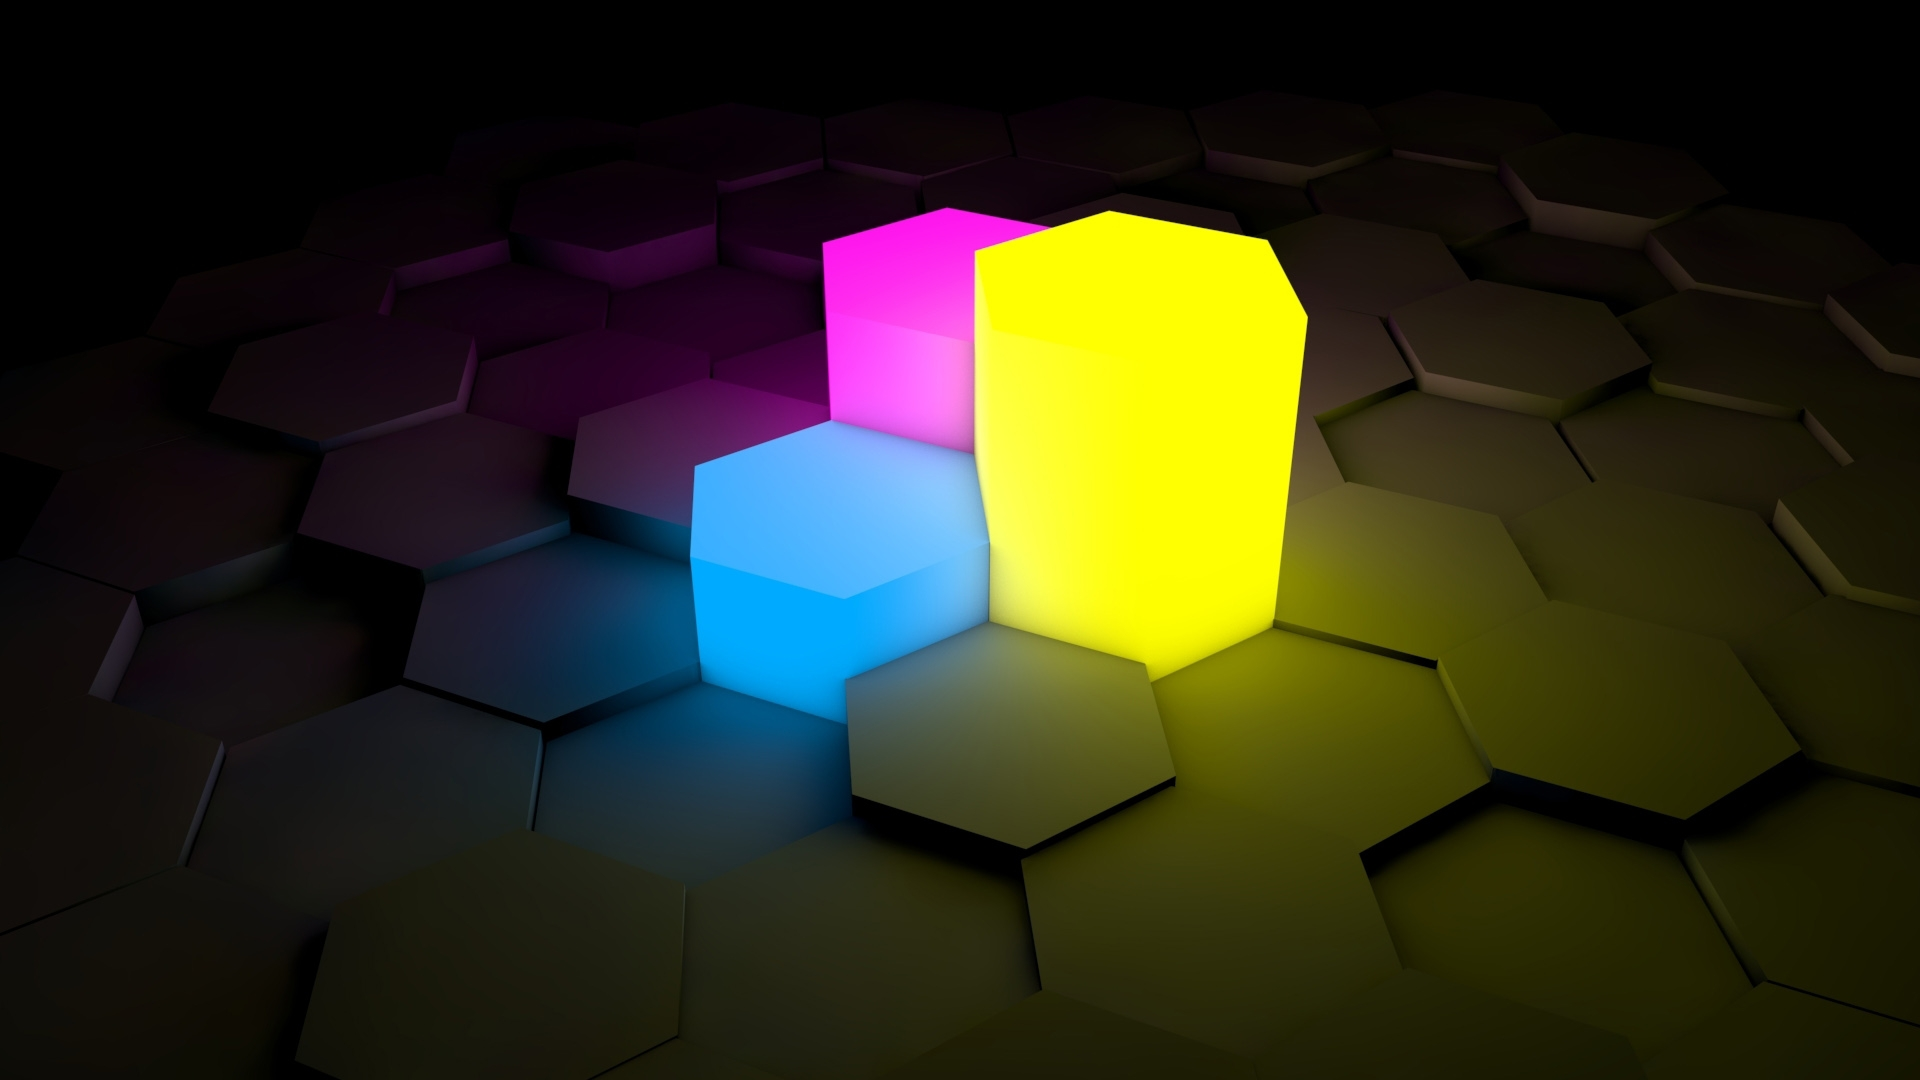 Neon Surface 3D Wallpaper - HQ Free Wallpapers download 100% high ...